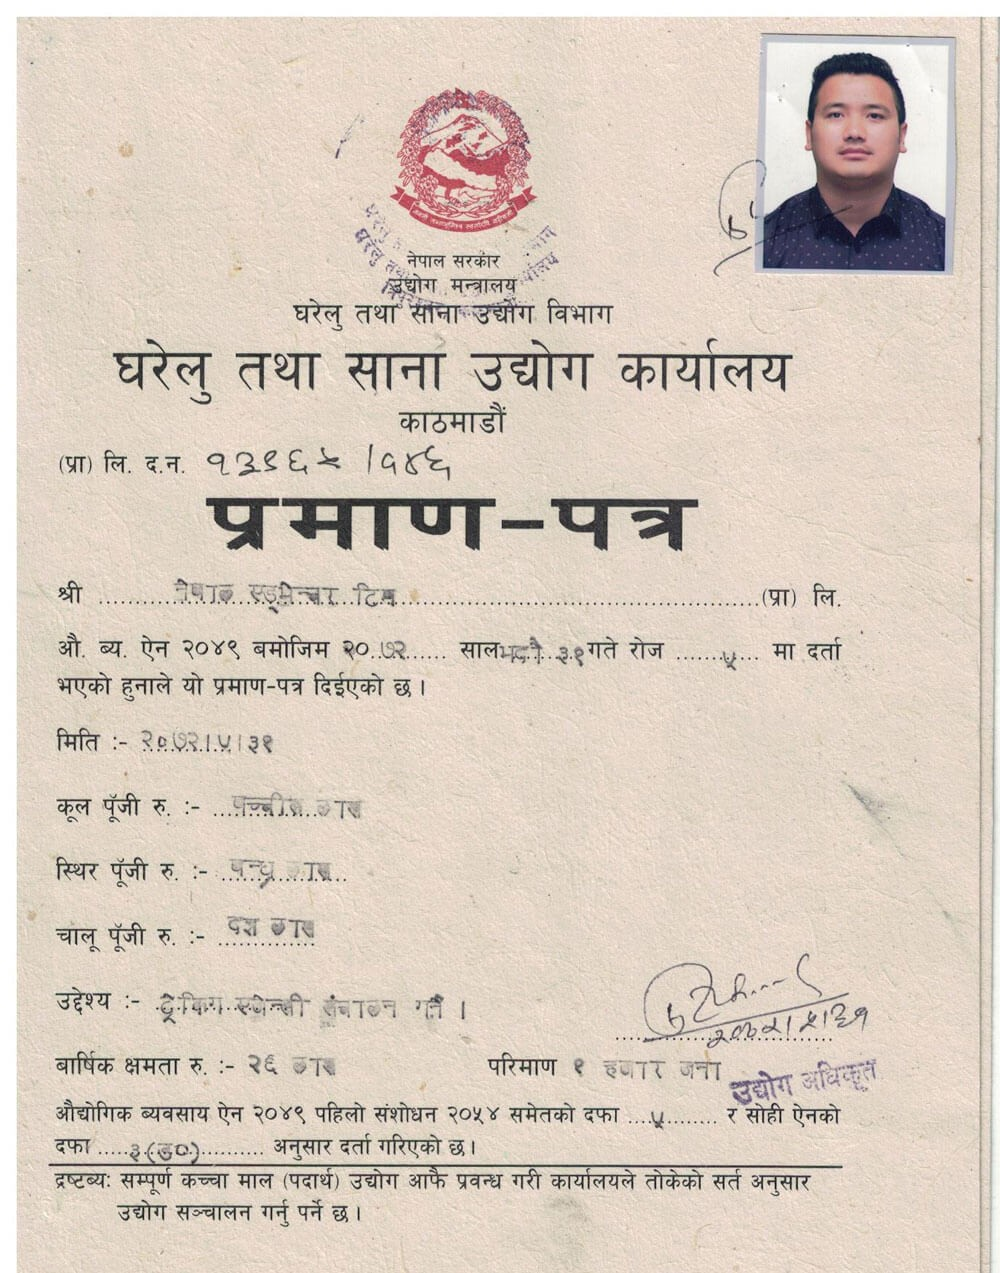 Certificate of Cottage and Small Scale Industries